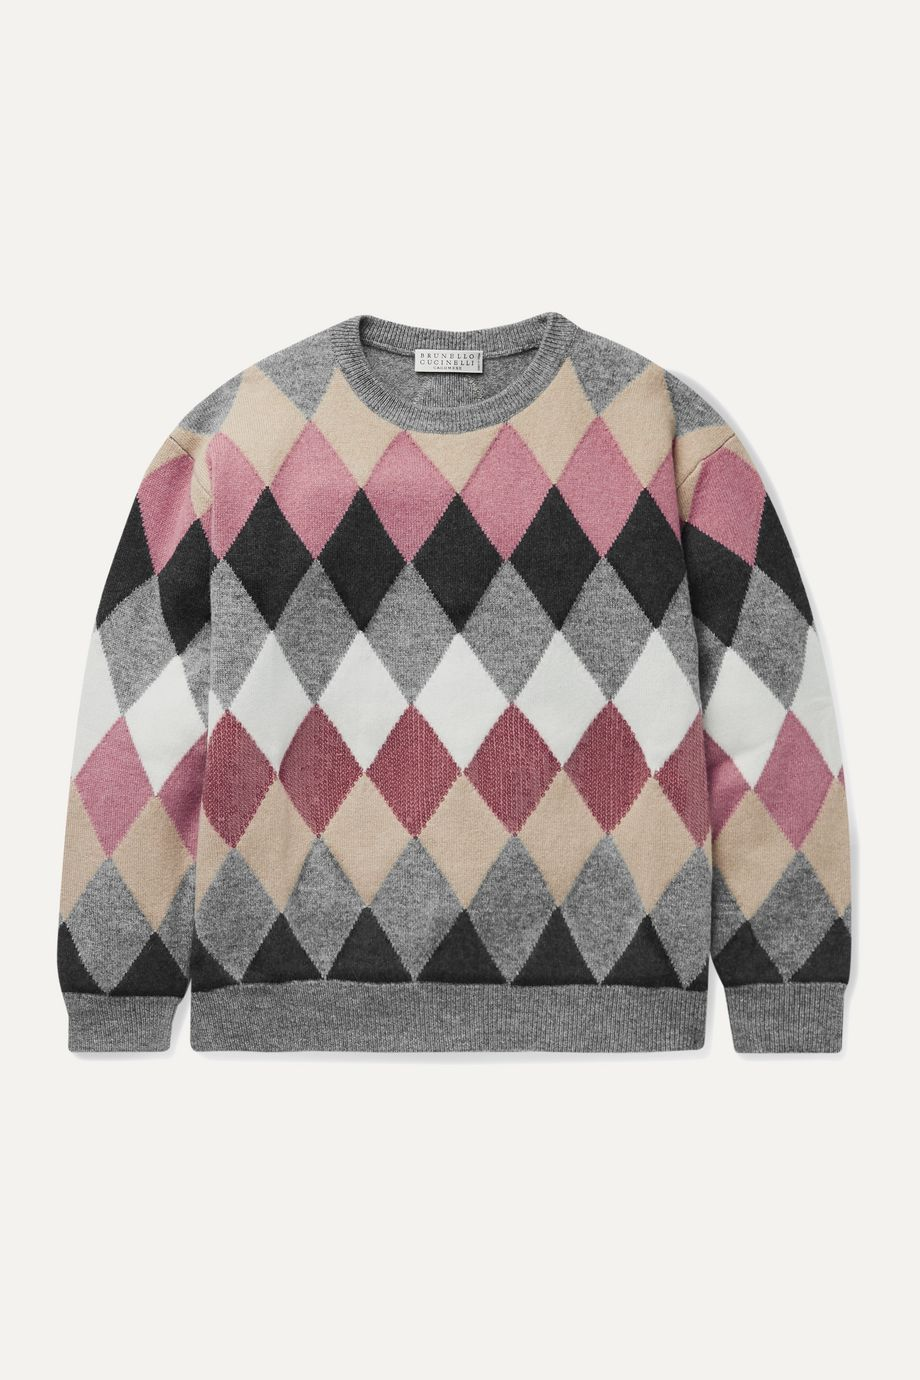 Brunello Cucinelli Kids Ages 8 - 10 sequin-embellished argyle wool-blend sweater